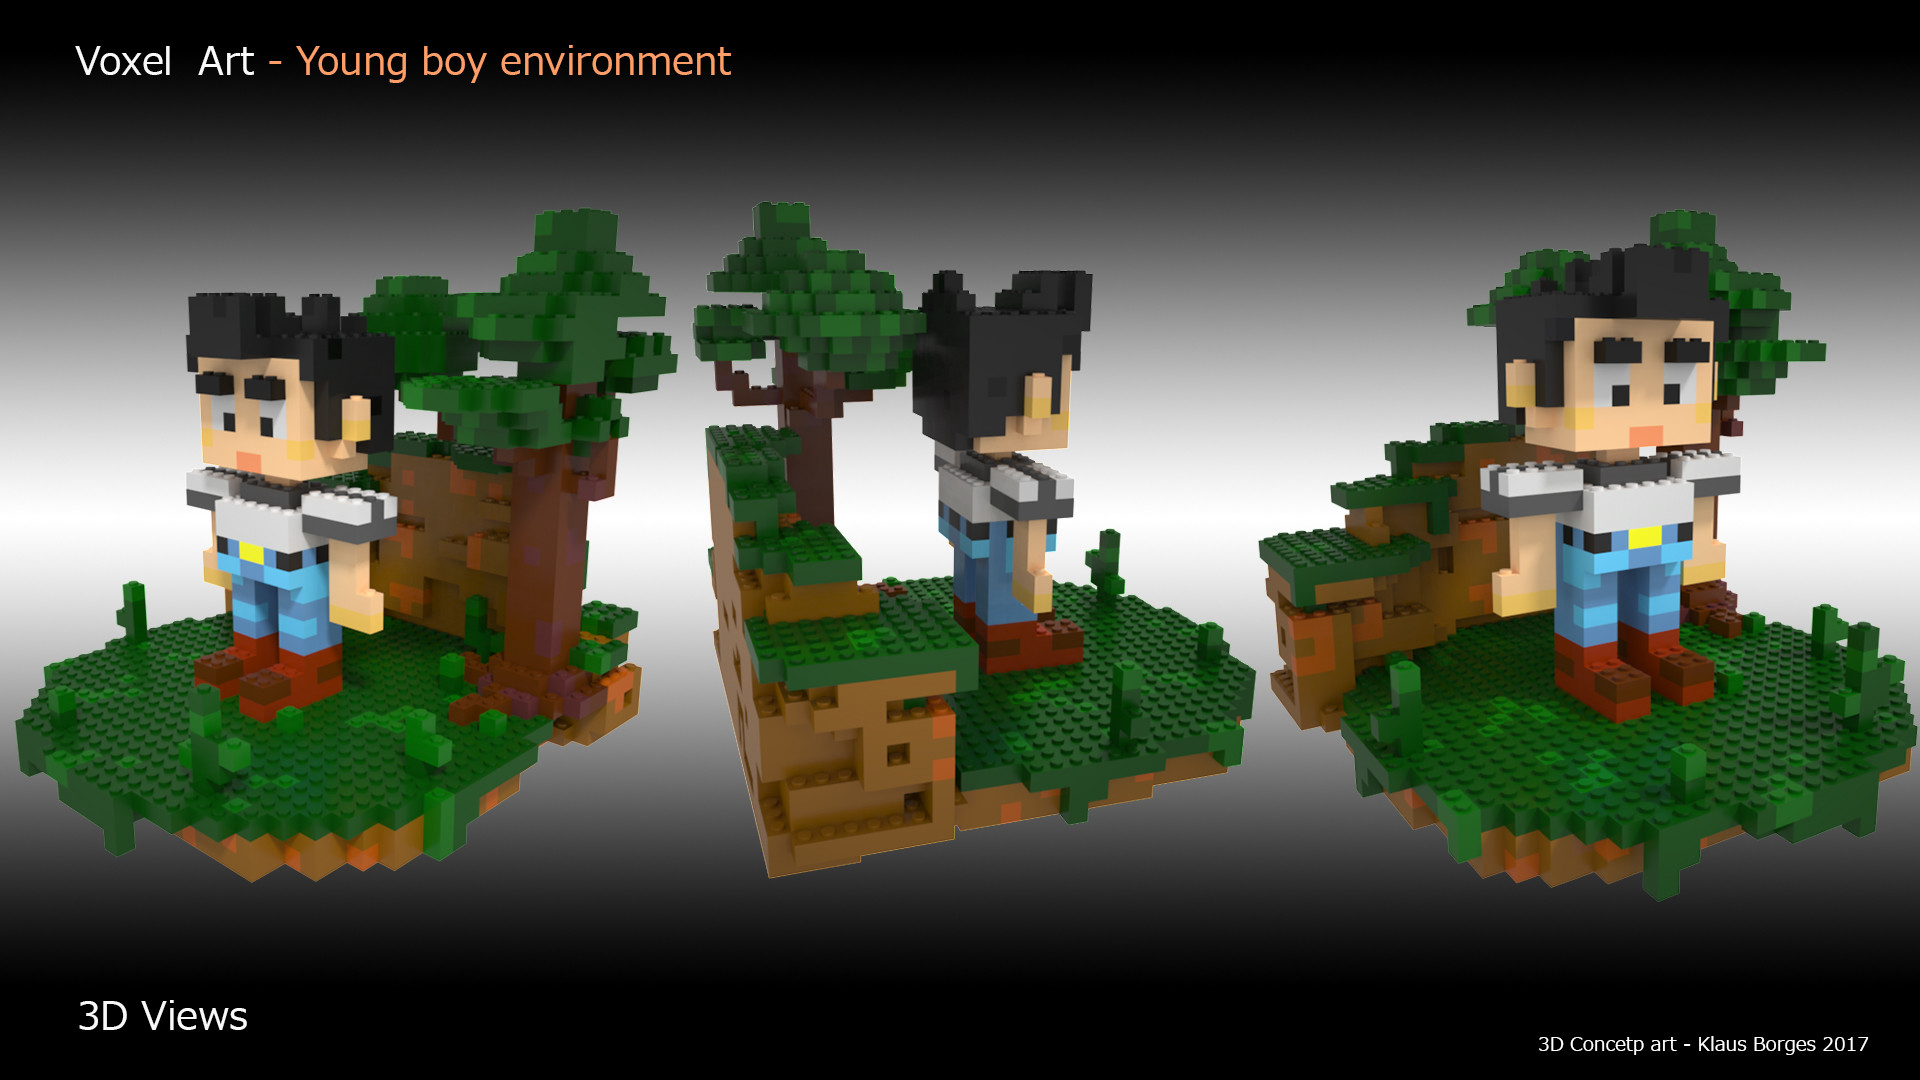 Klaus borges mockup joven masculinoenvironmentlego